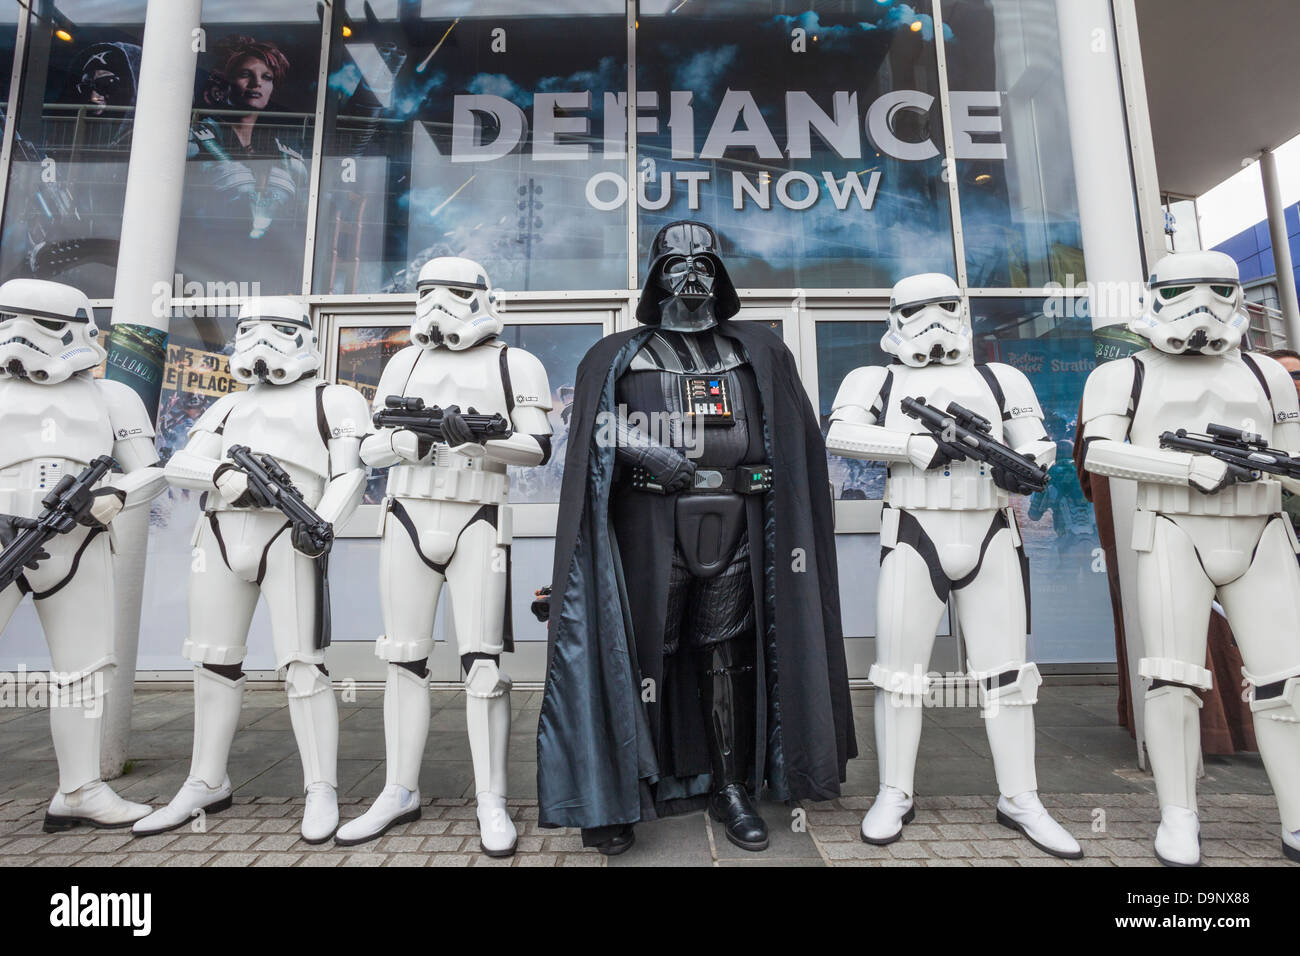 England, London, Stratford, Annual Sci-fi Costume Parade, Star Wars, Darth Vader and Stormtroopers - Stock Image